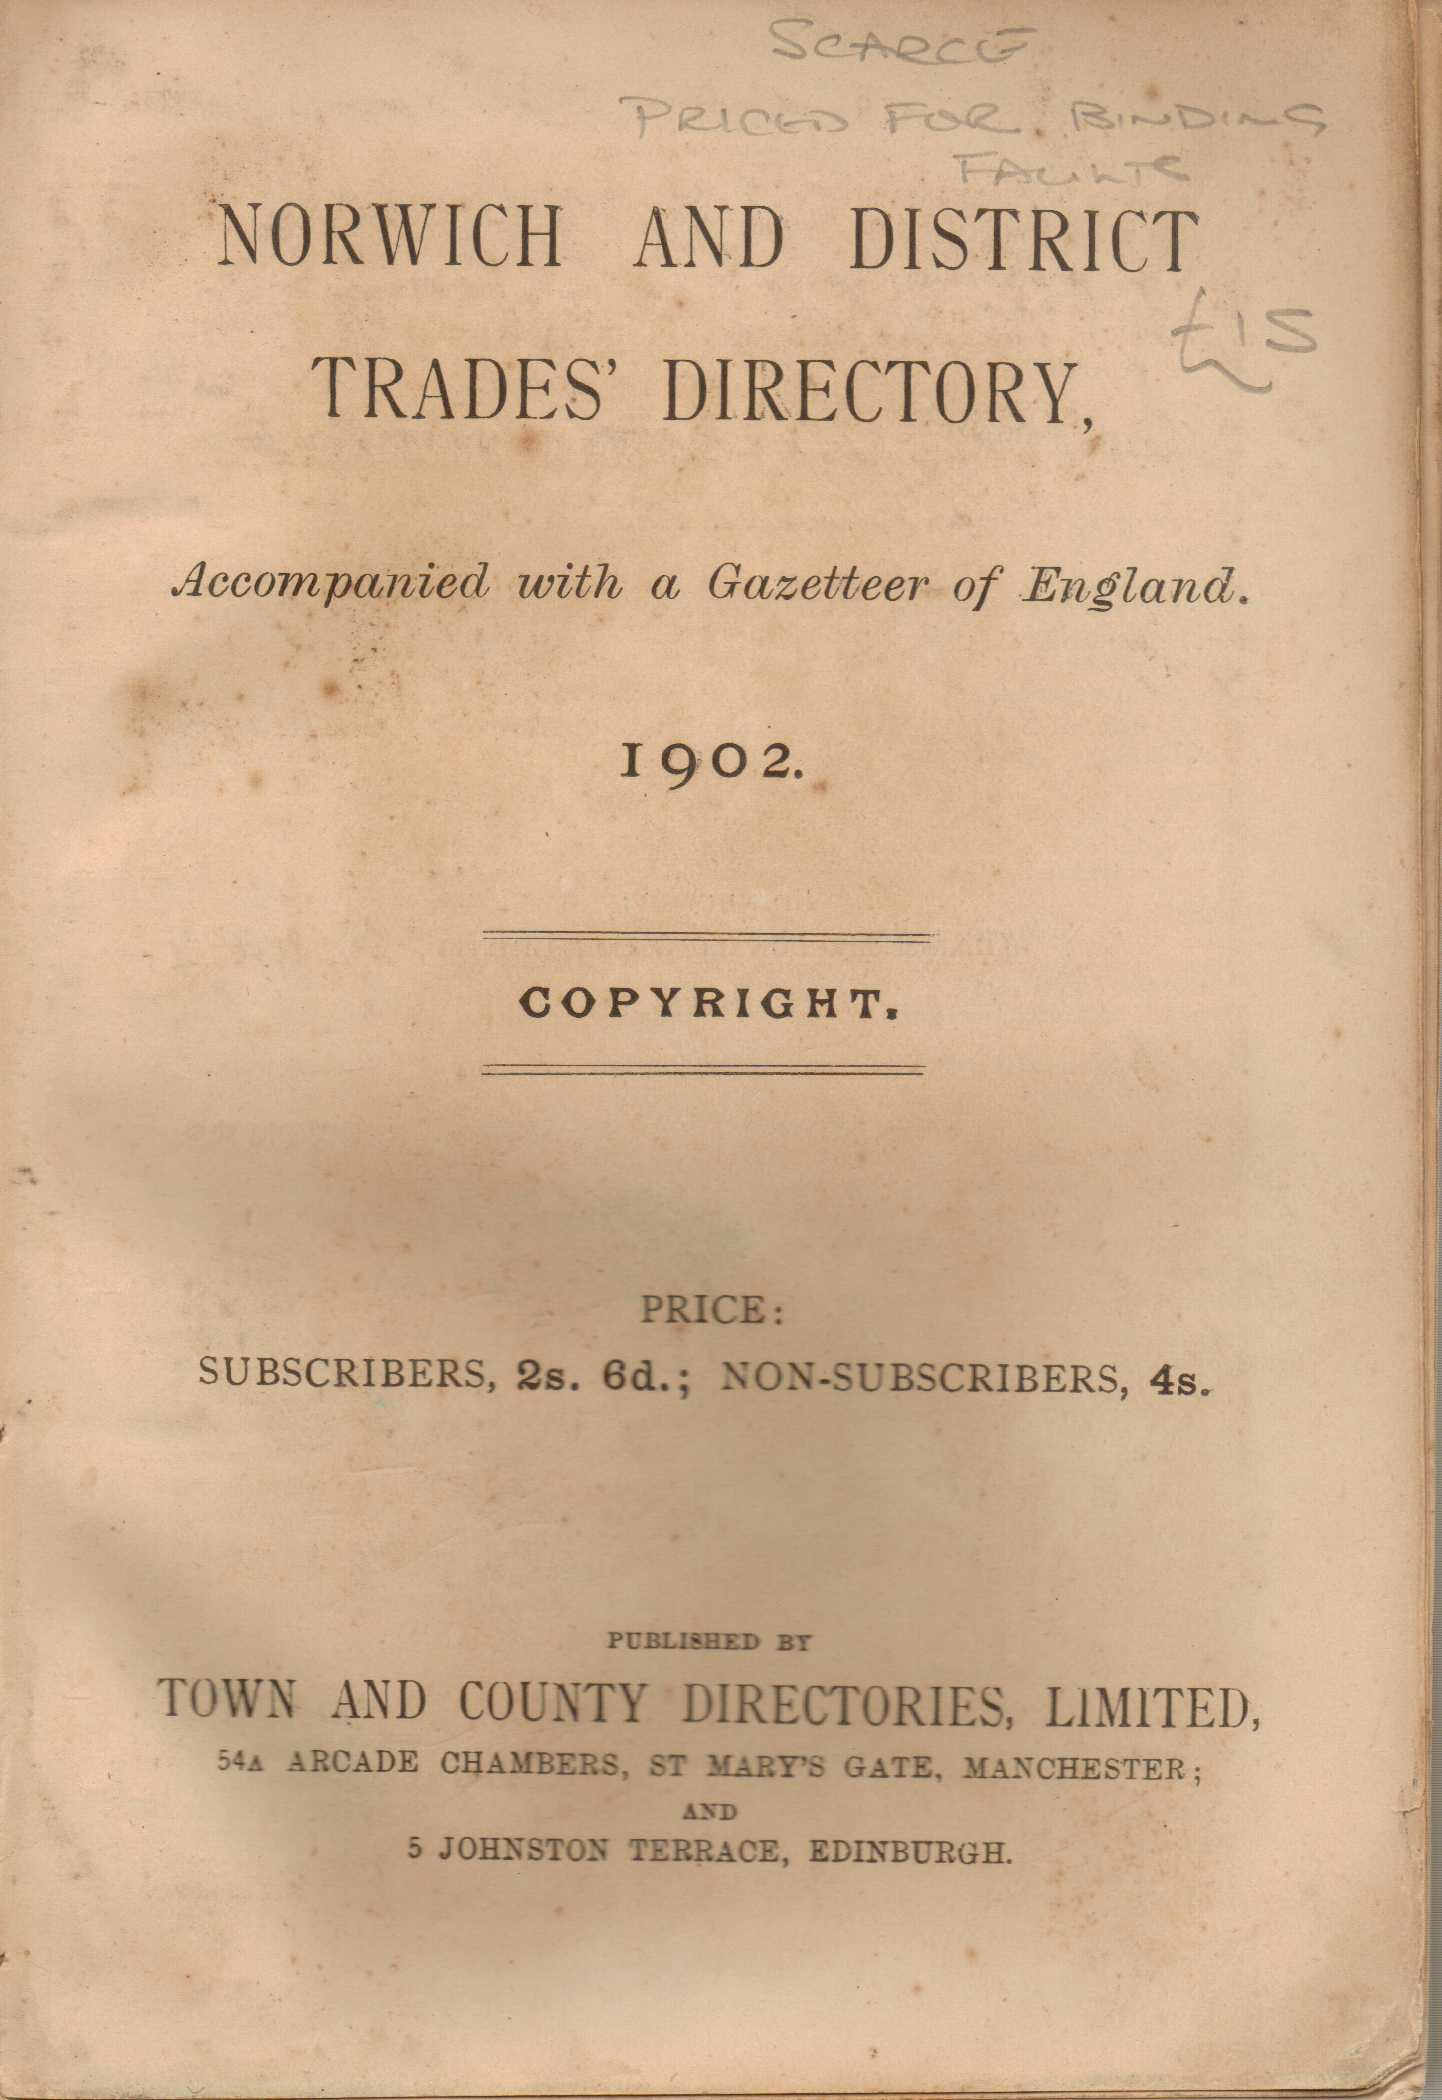 Image for Norwich and District Trades Directory 1902 accompanied with a Gazetteer of England